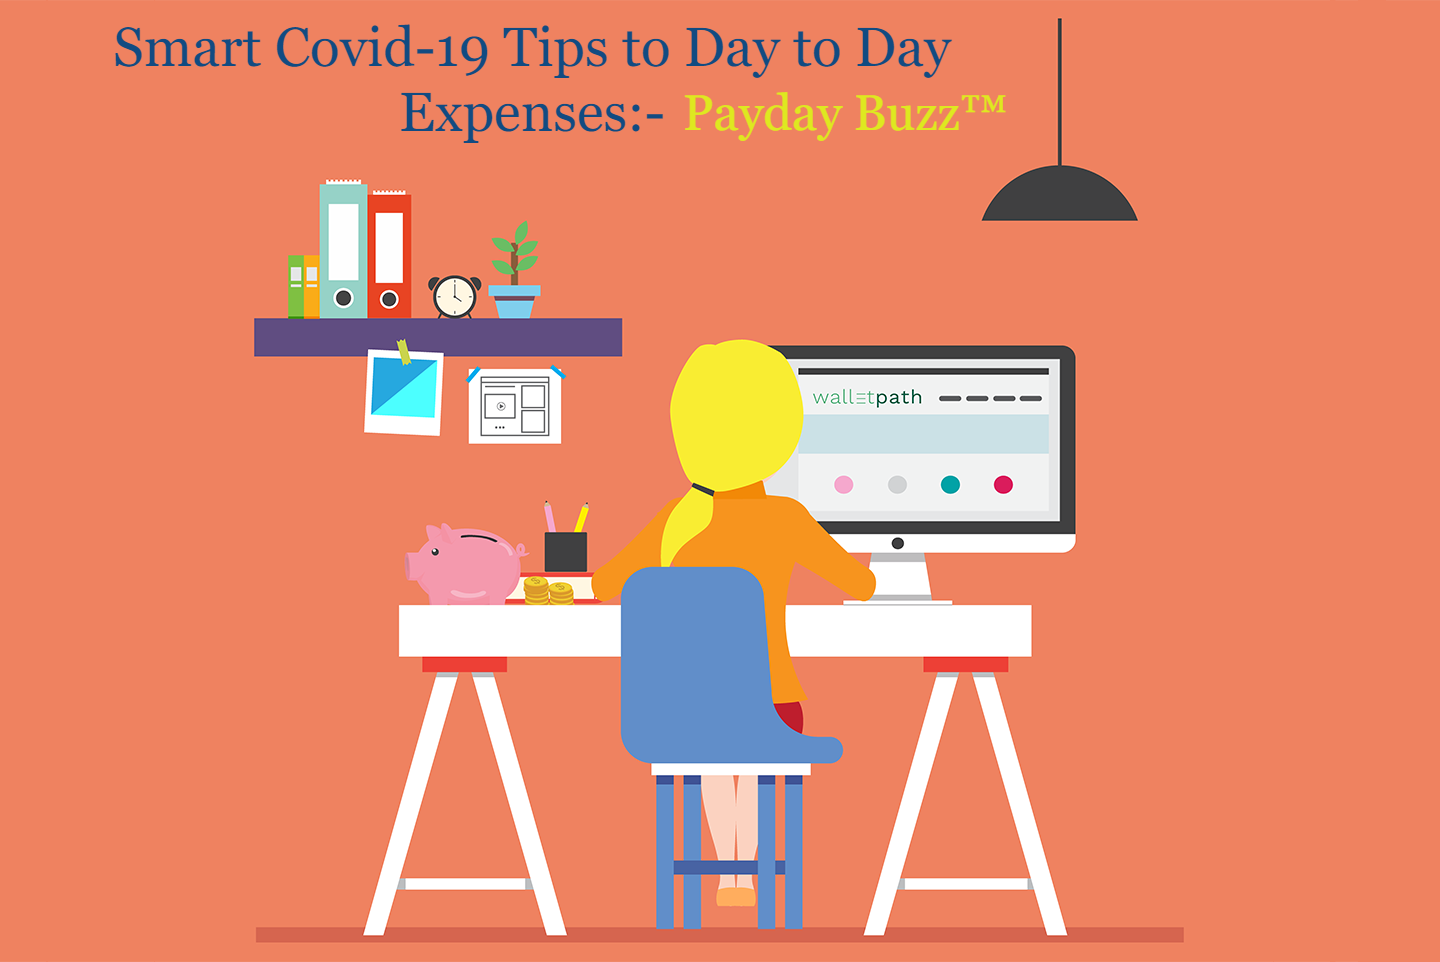 How To Manage Day To Day Covid-19 Expenses?